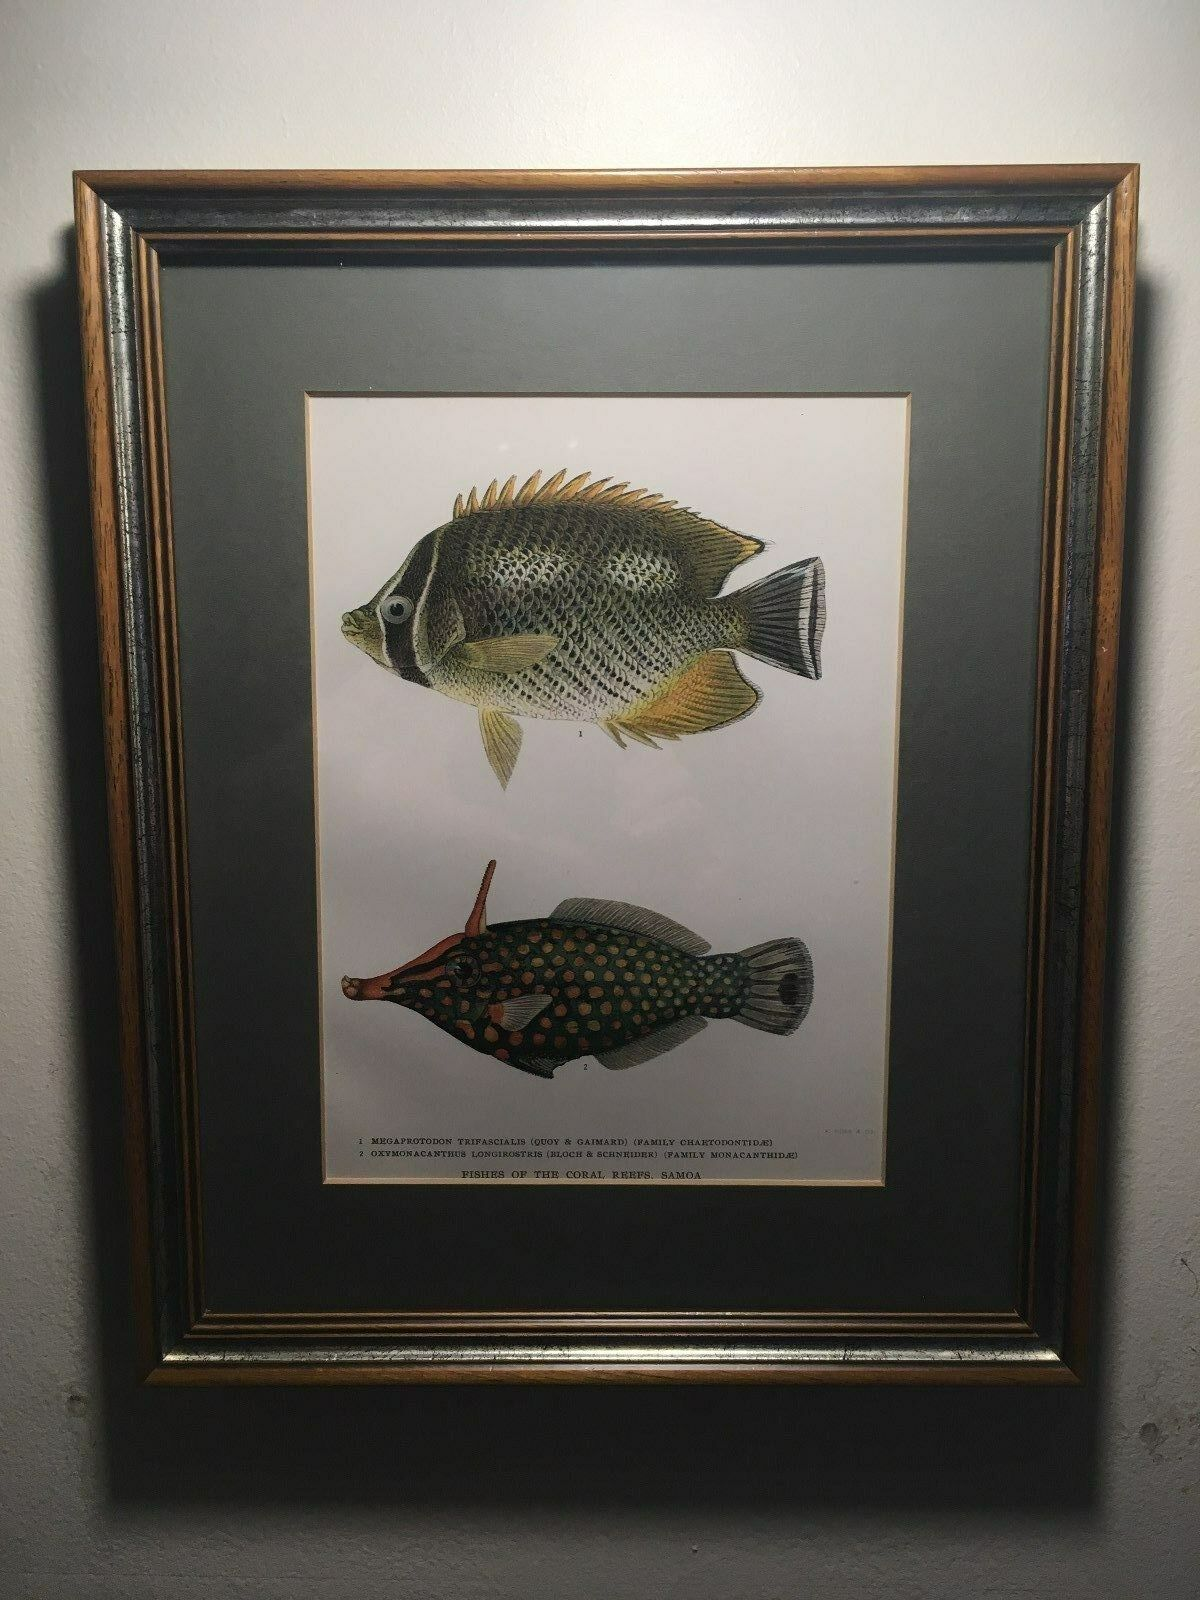 Framed Antique color Lithograph of Fishes of the Coral Reef, Samoa, A. Hoen